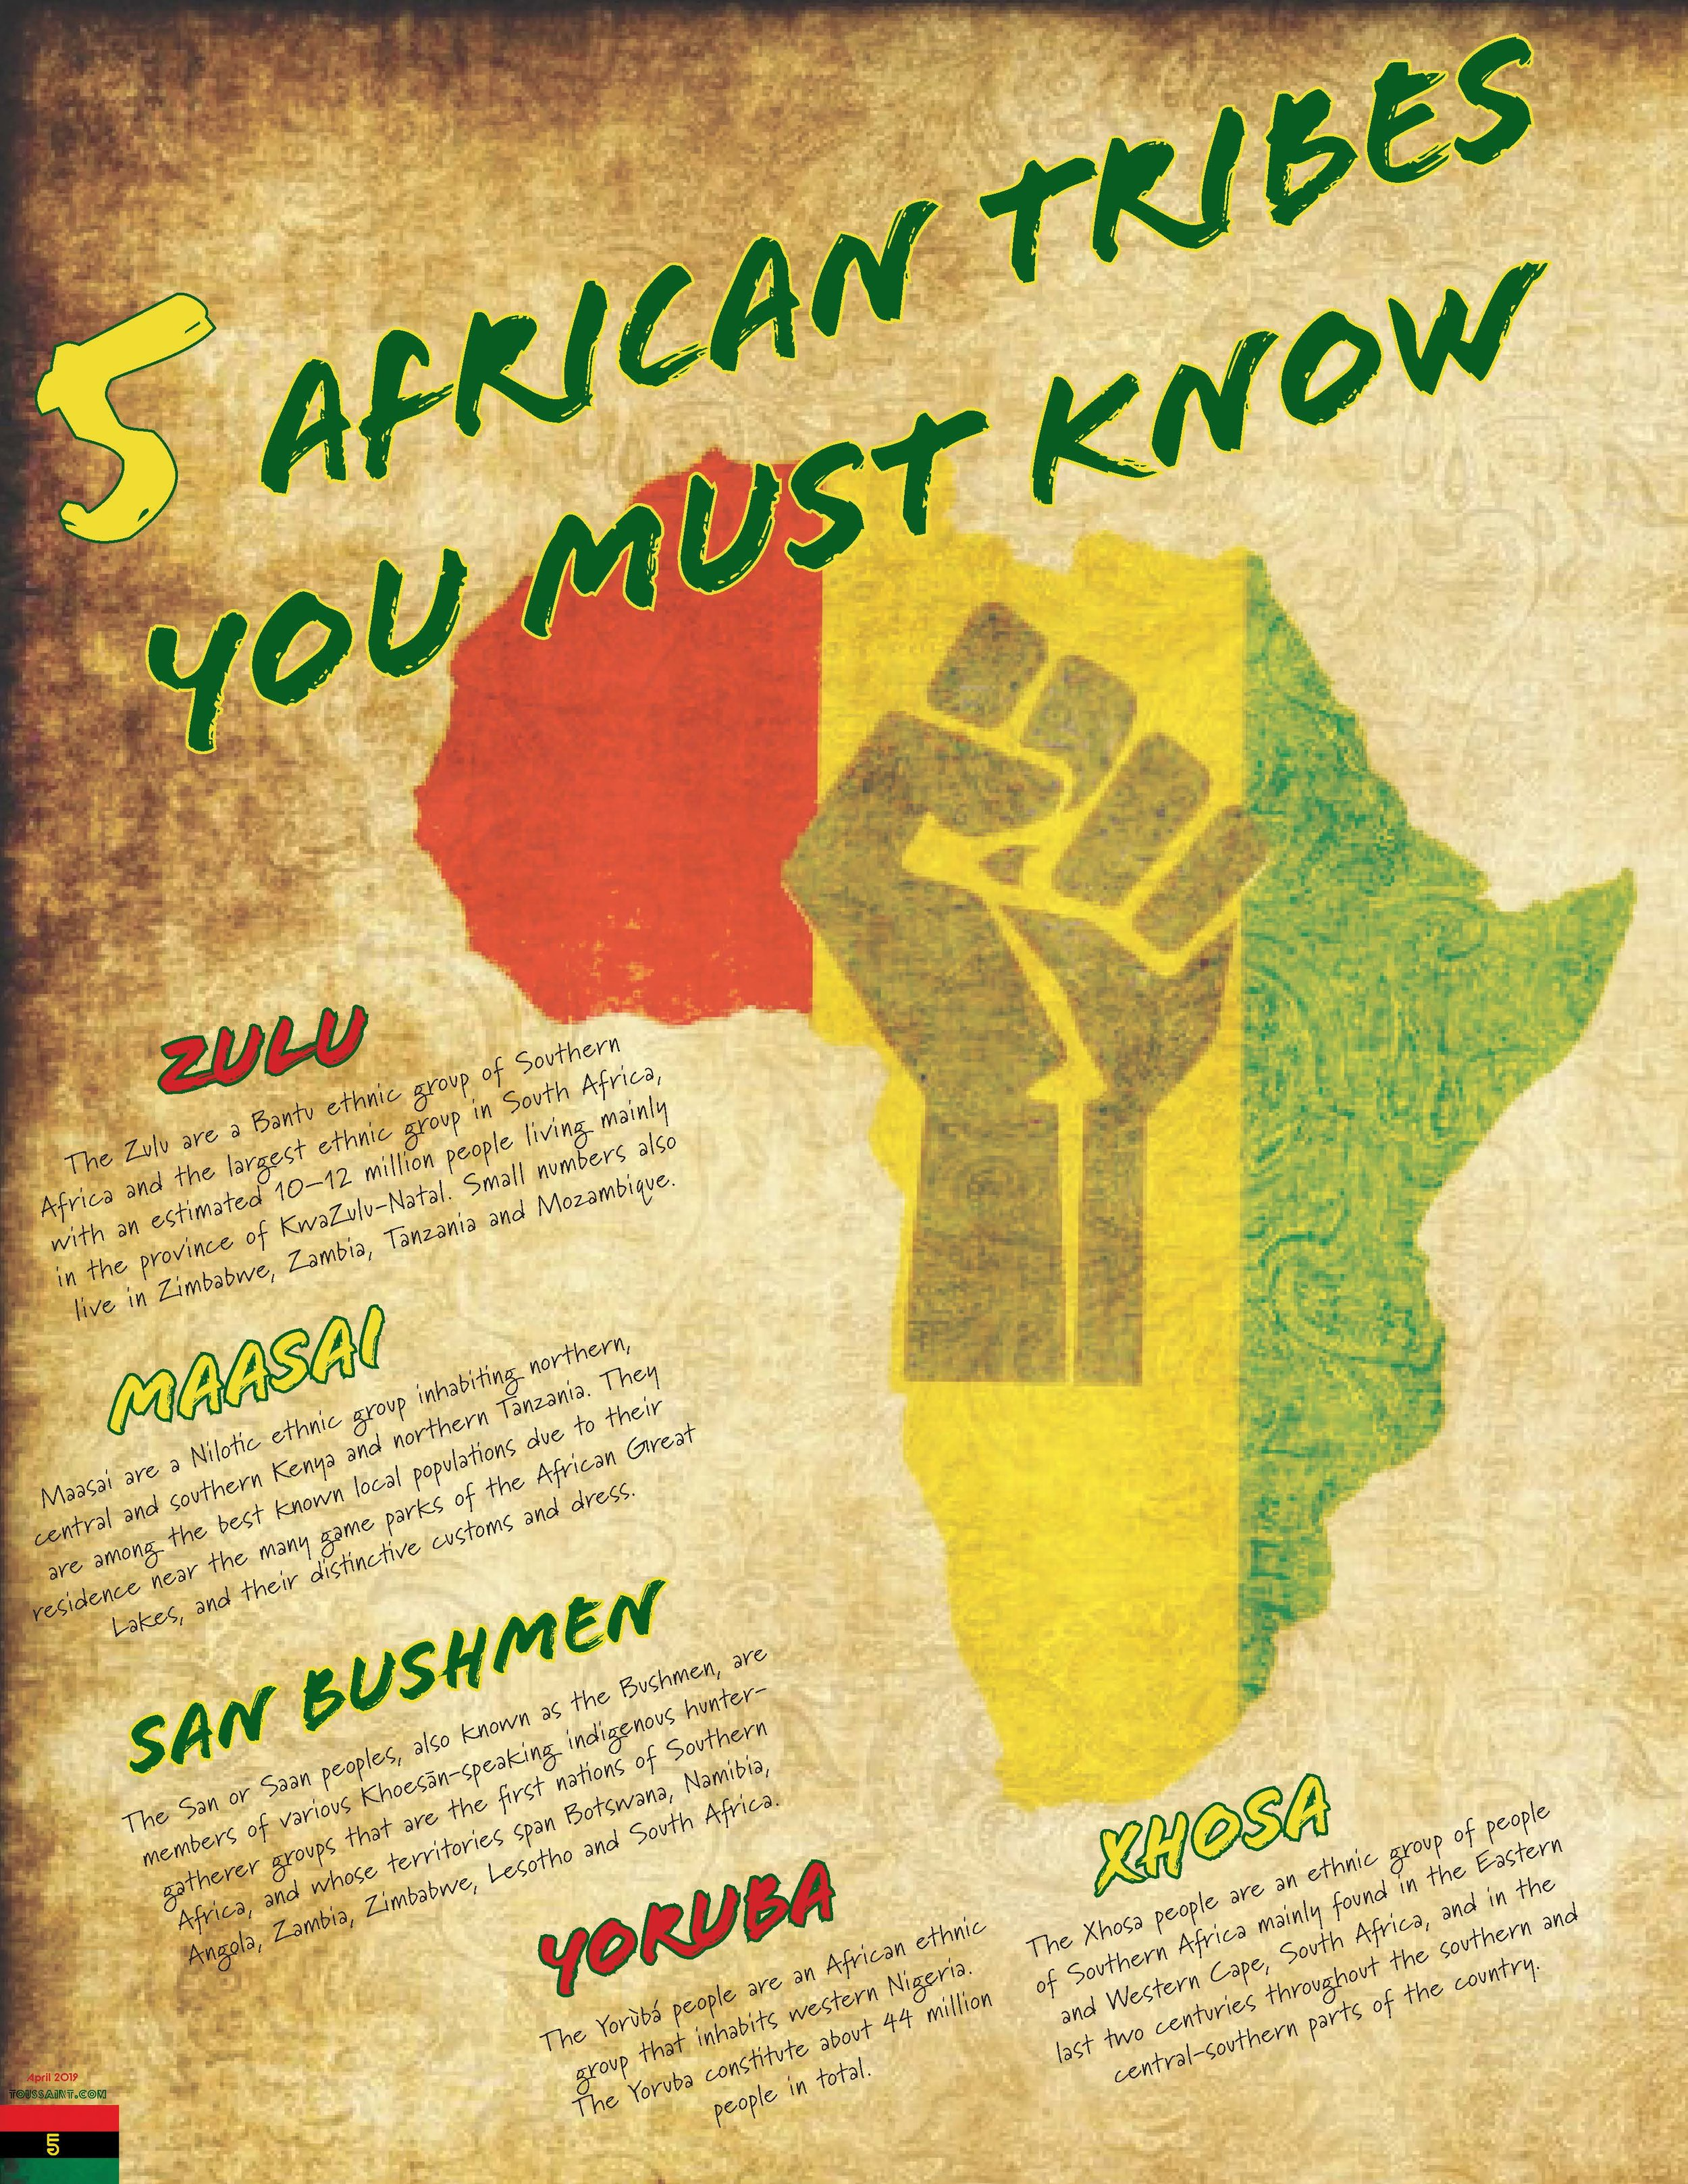 """5 African Tribes You Must Know"" article for the Front of The Book"